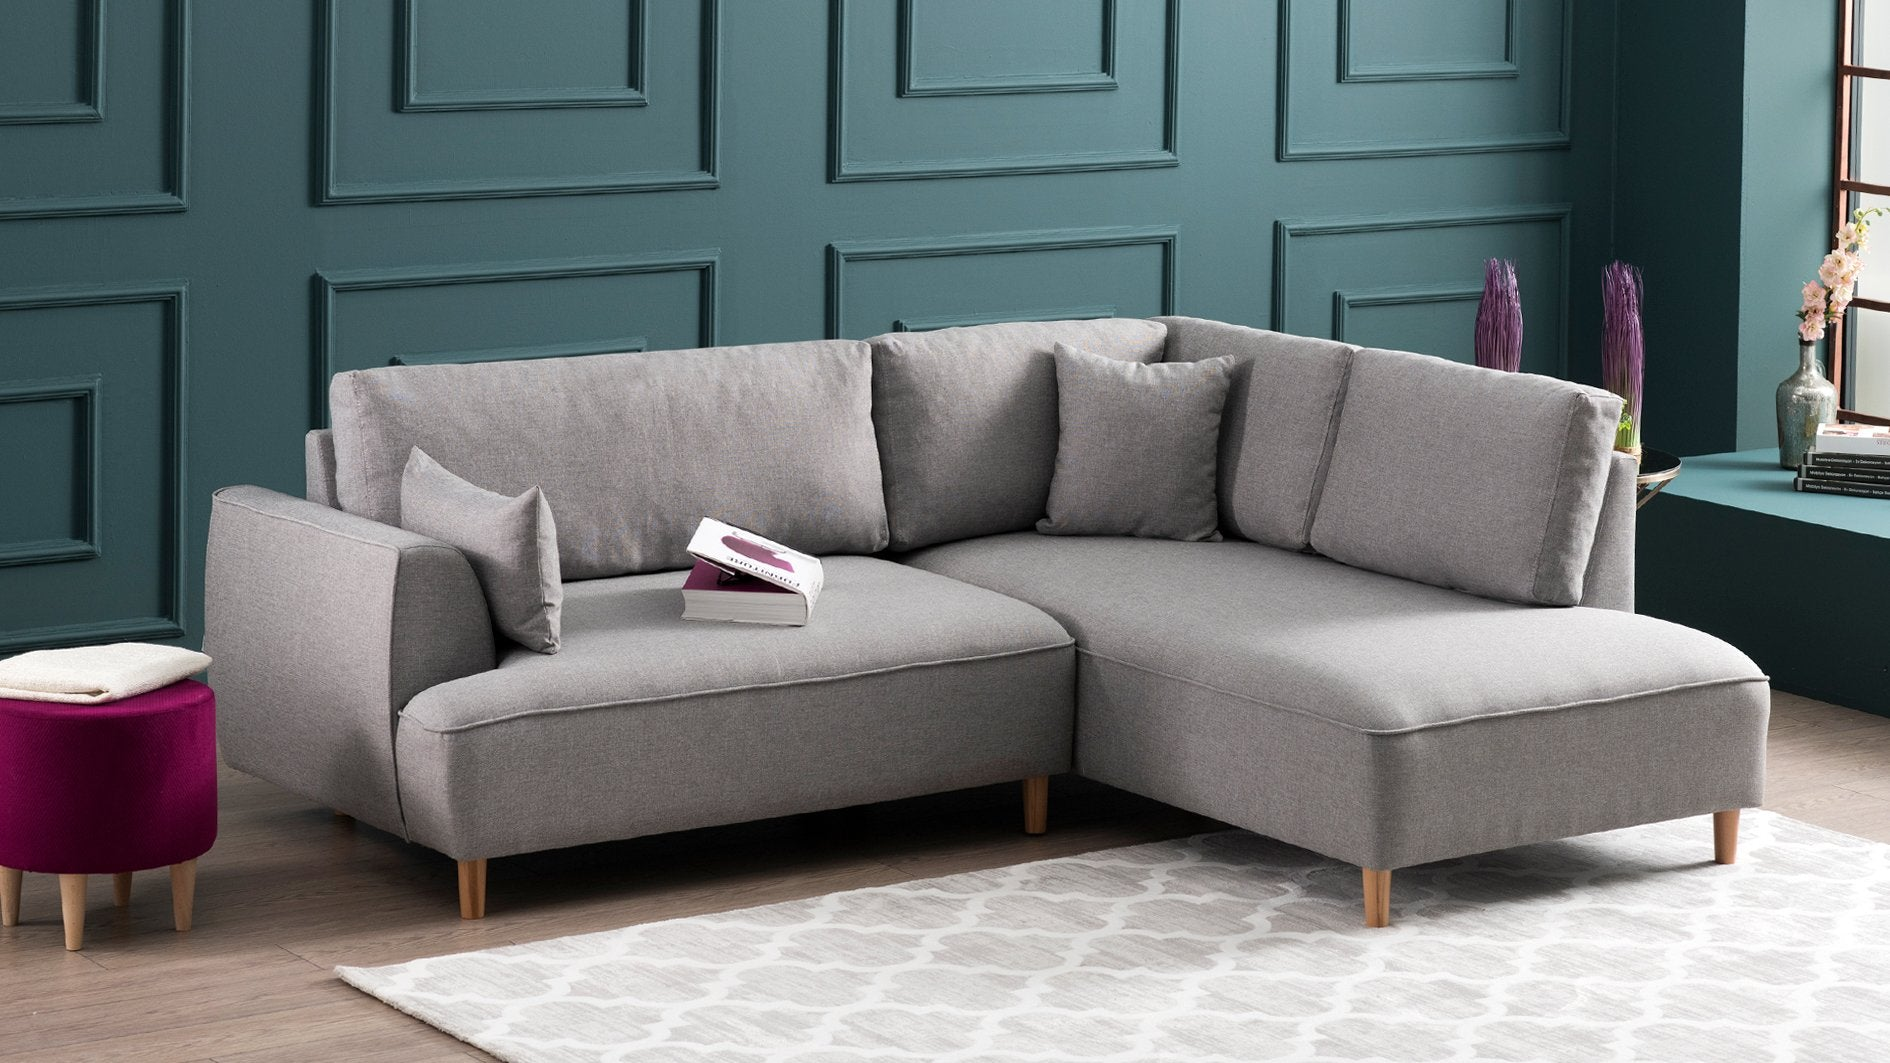 Felix Right-Hand/Left-Hand Corner Sofa - Decorotika